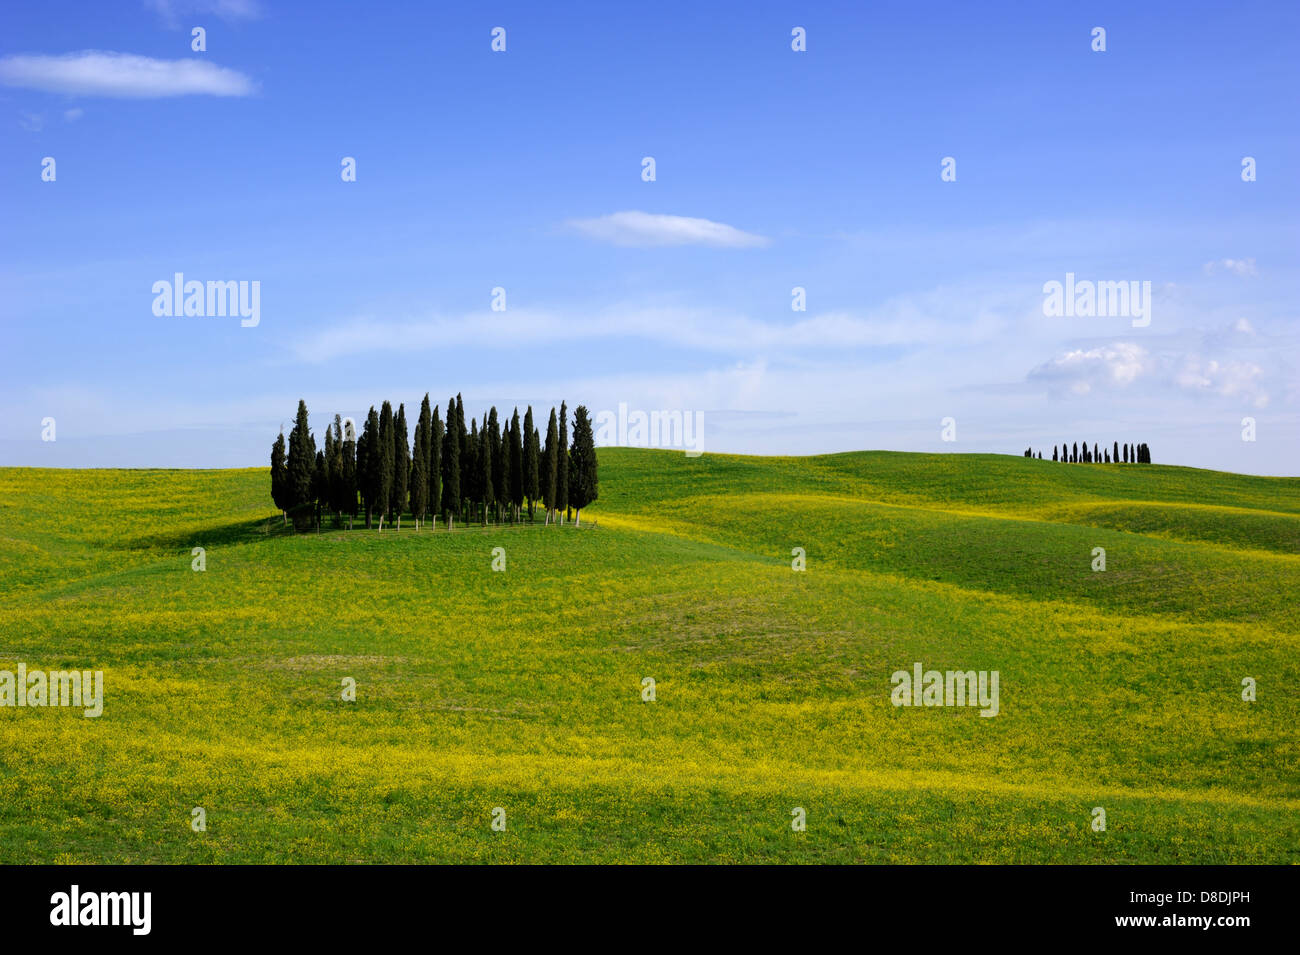 italy, tuscany, val d'orcia, countryside, cypress trees - Stock Image